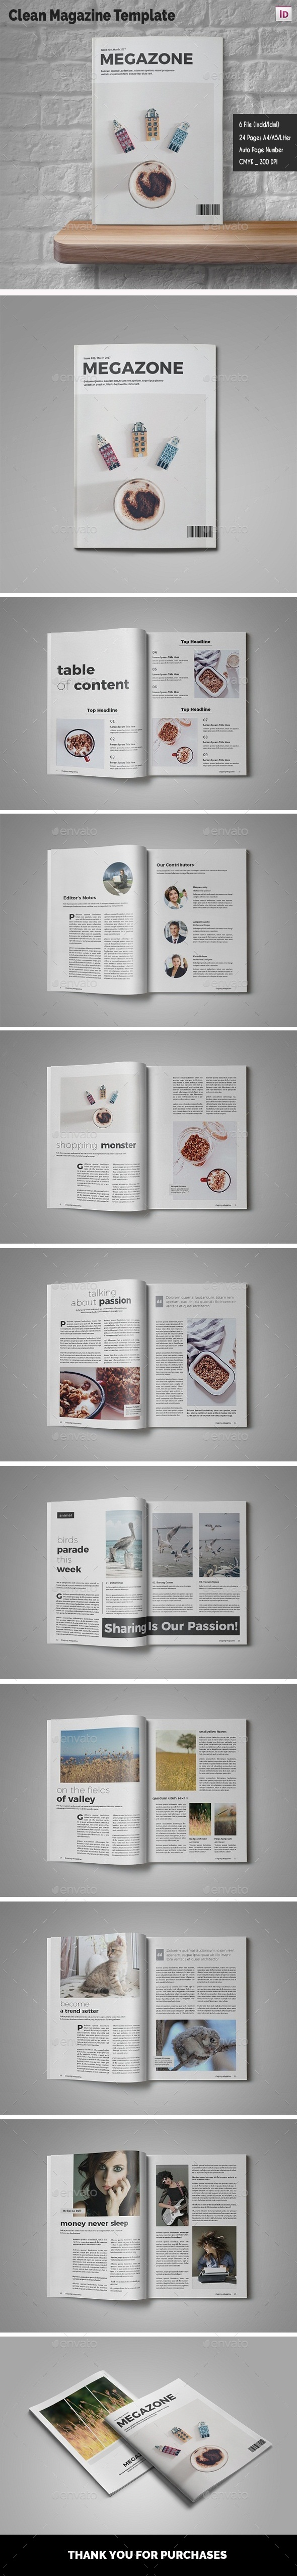 Clean Magazine Template - Magazines Print Templates